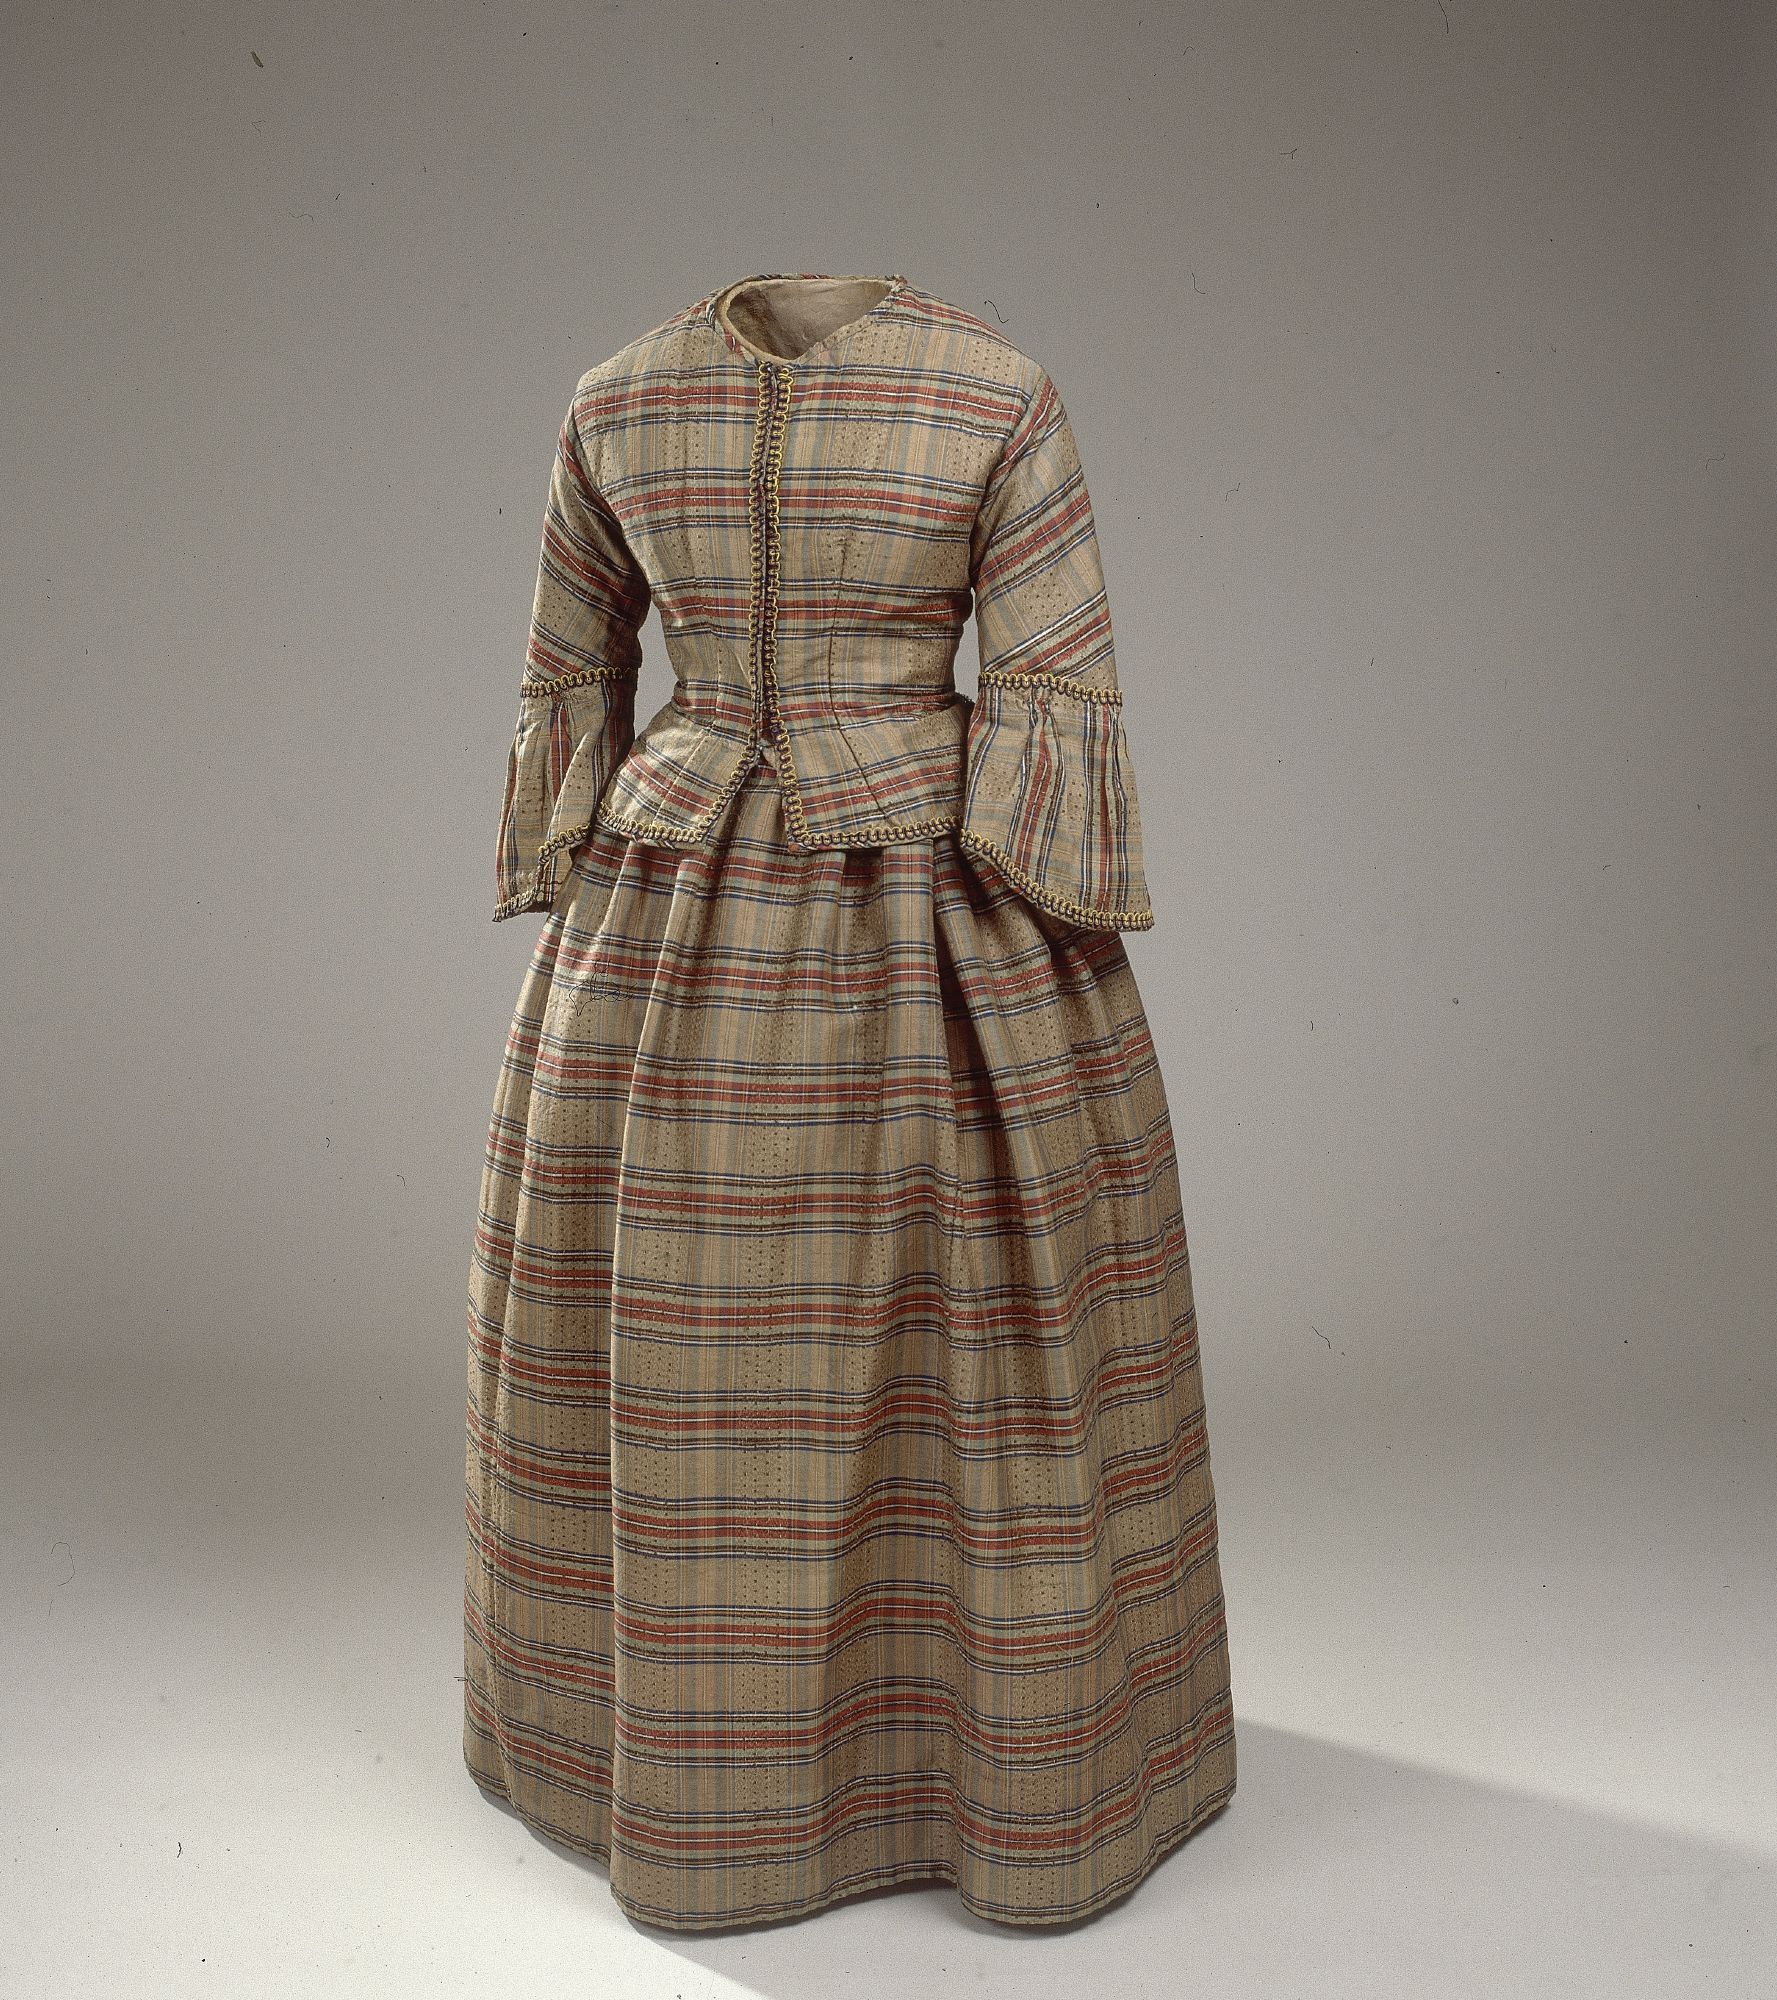 Dress in checkered wool from about 1850. National Museum of Denmark